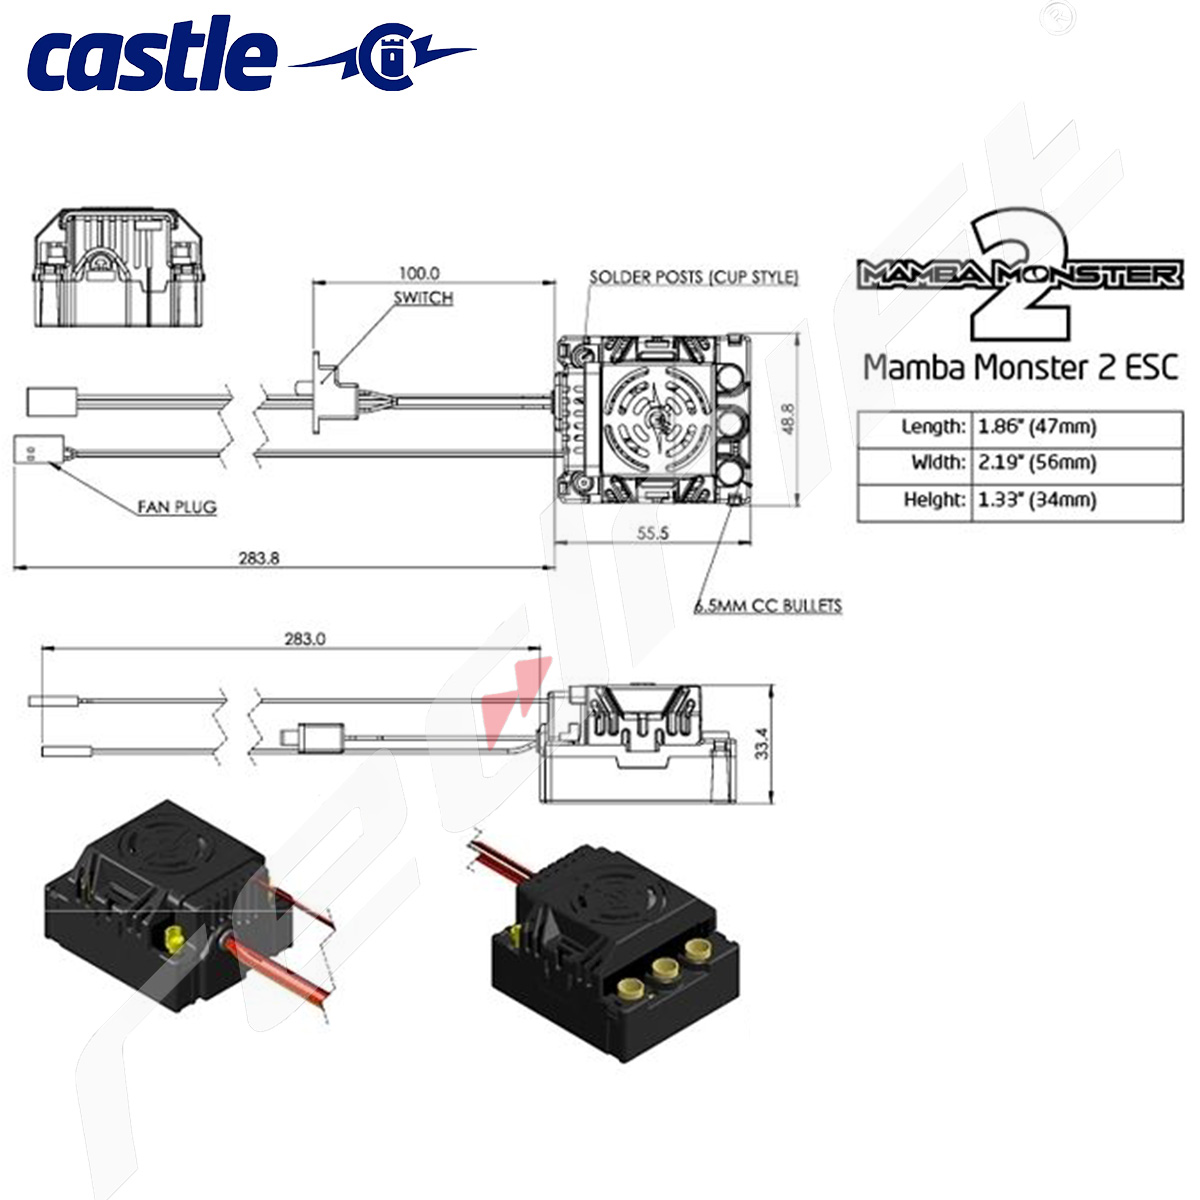 Mamba Monster Wiring Diagram Fitness Run For Your Life Hight Resolution Of Castle 2